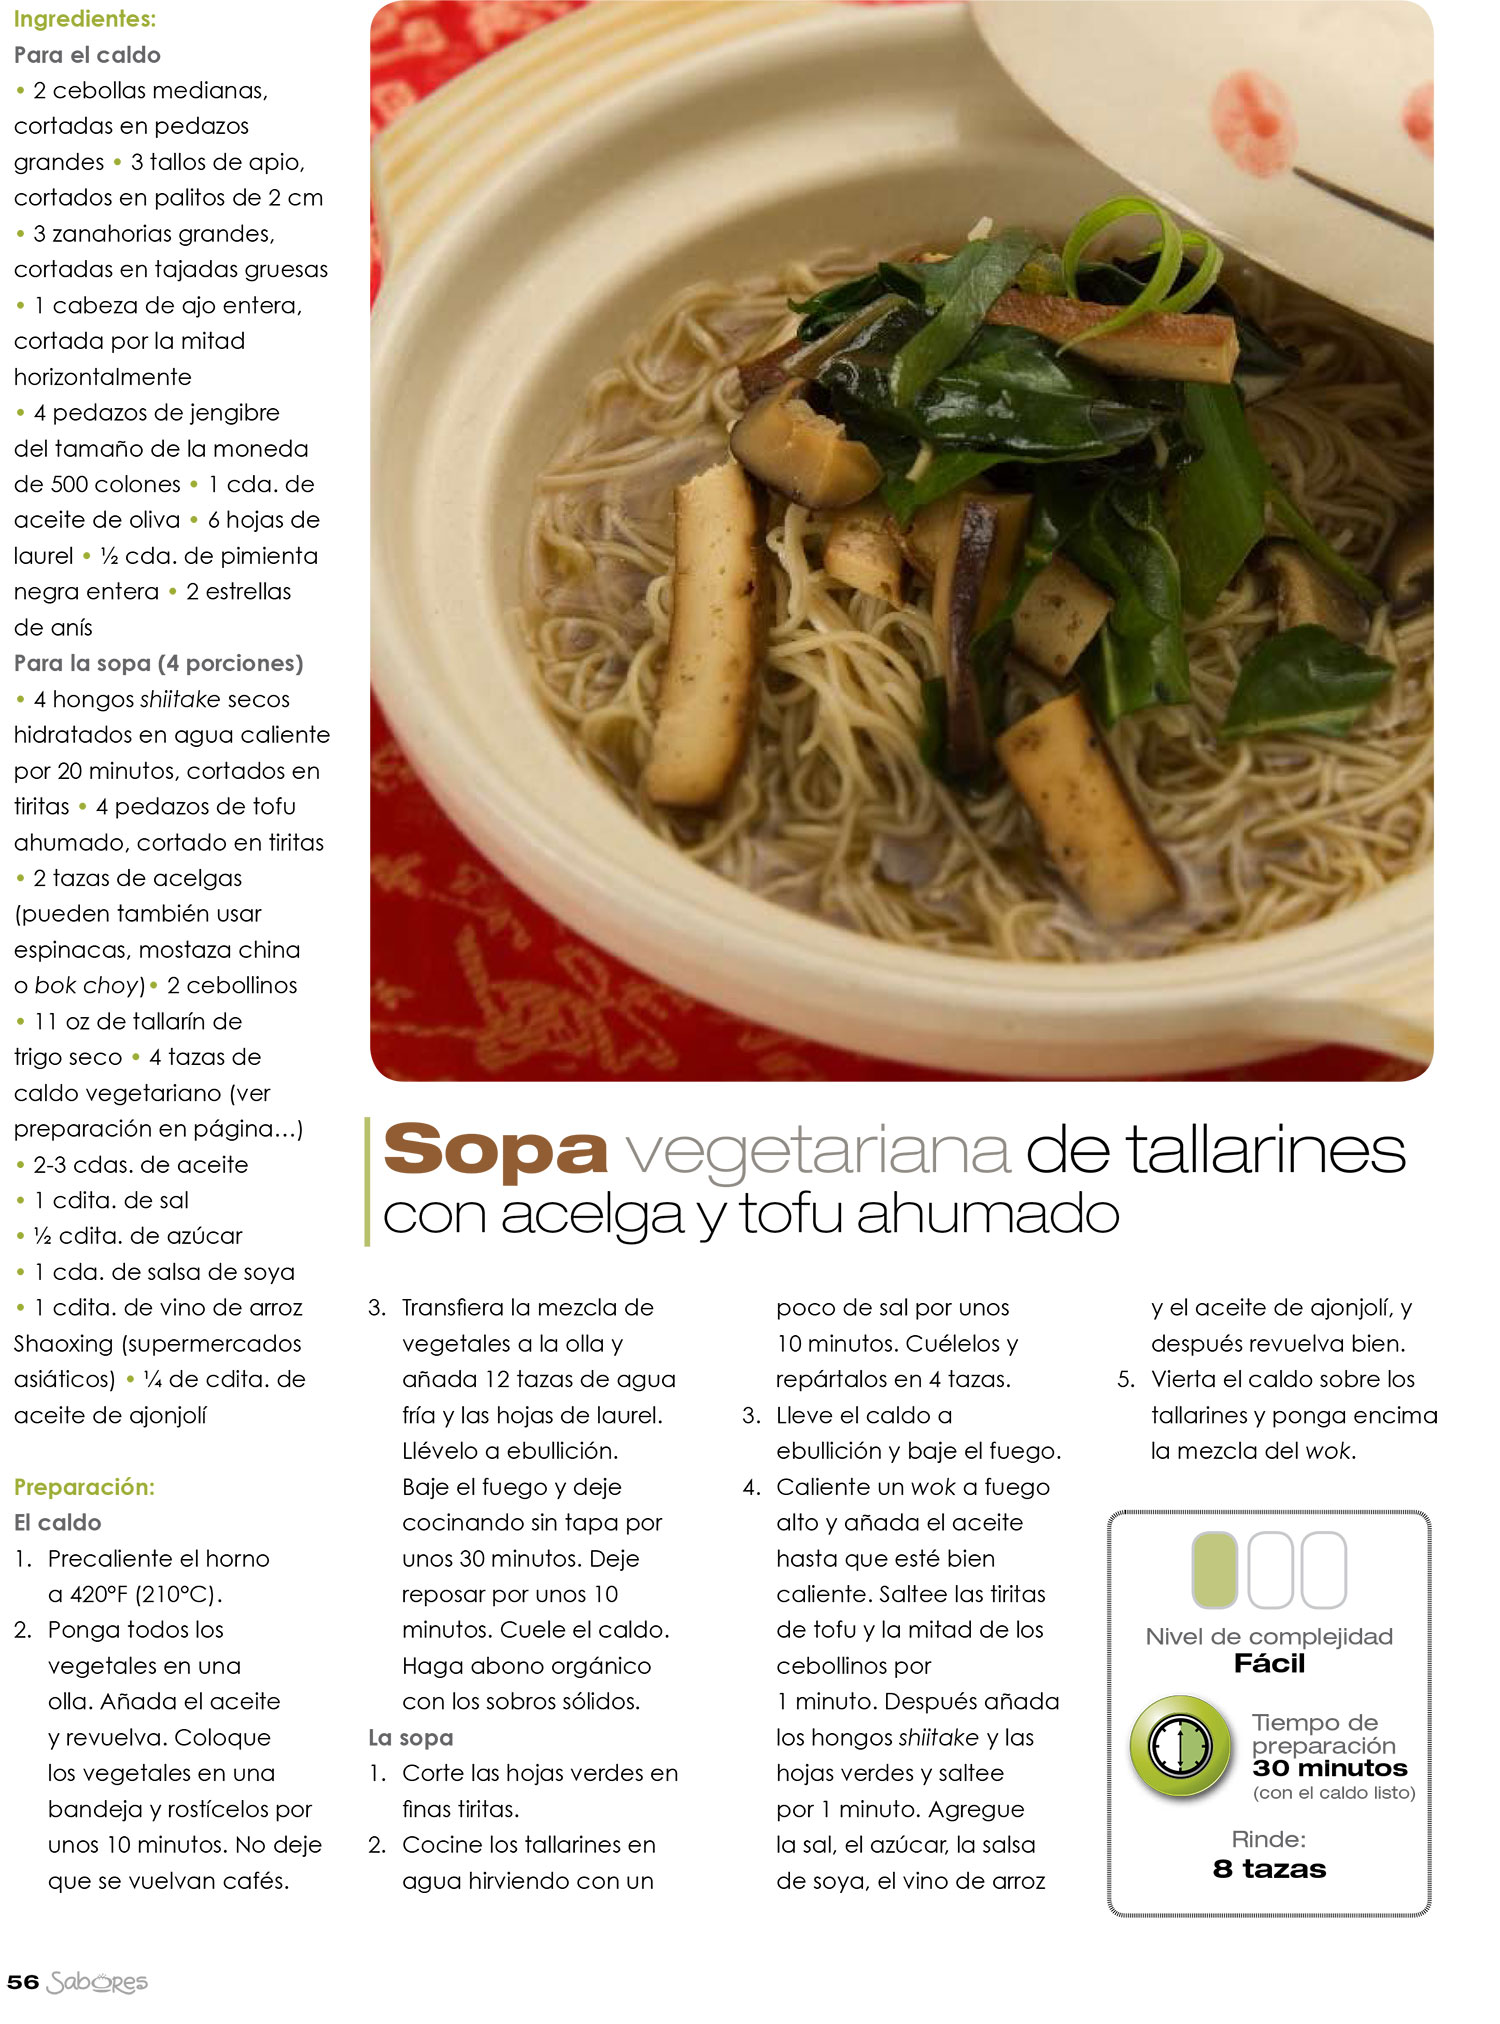 Thai Recipes From Sabores Magazine Spanish Tin Jo Restaurant # Muebles Urgelles